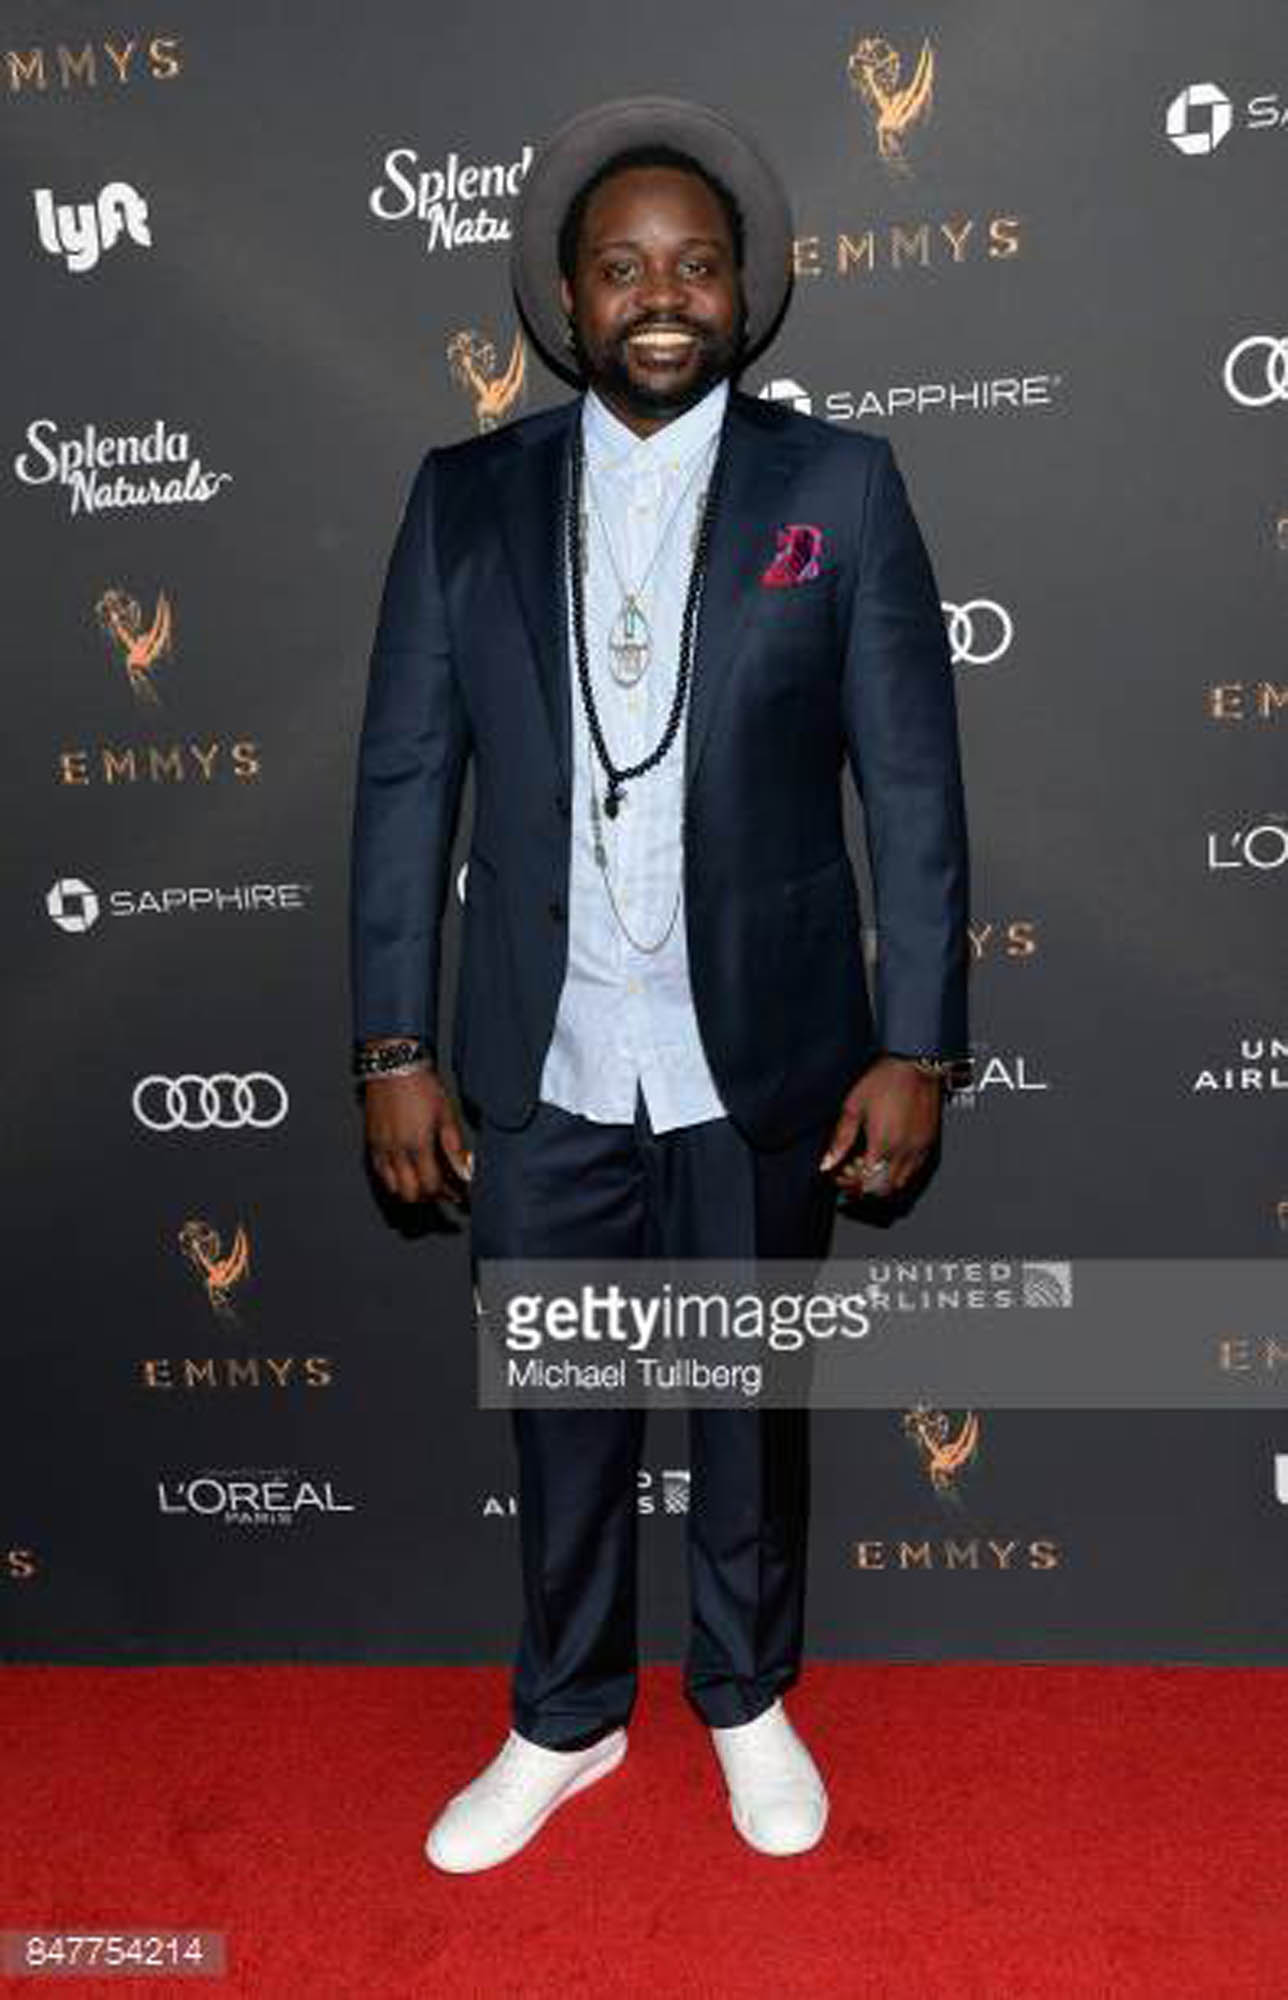 Styling Brian Tyree Henry for the Emmy's 2017